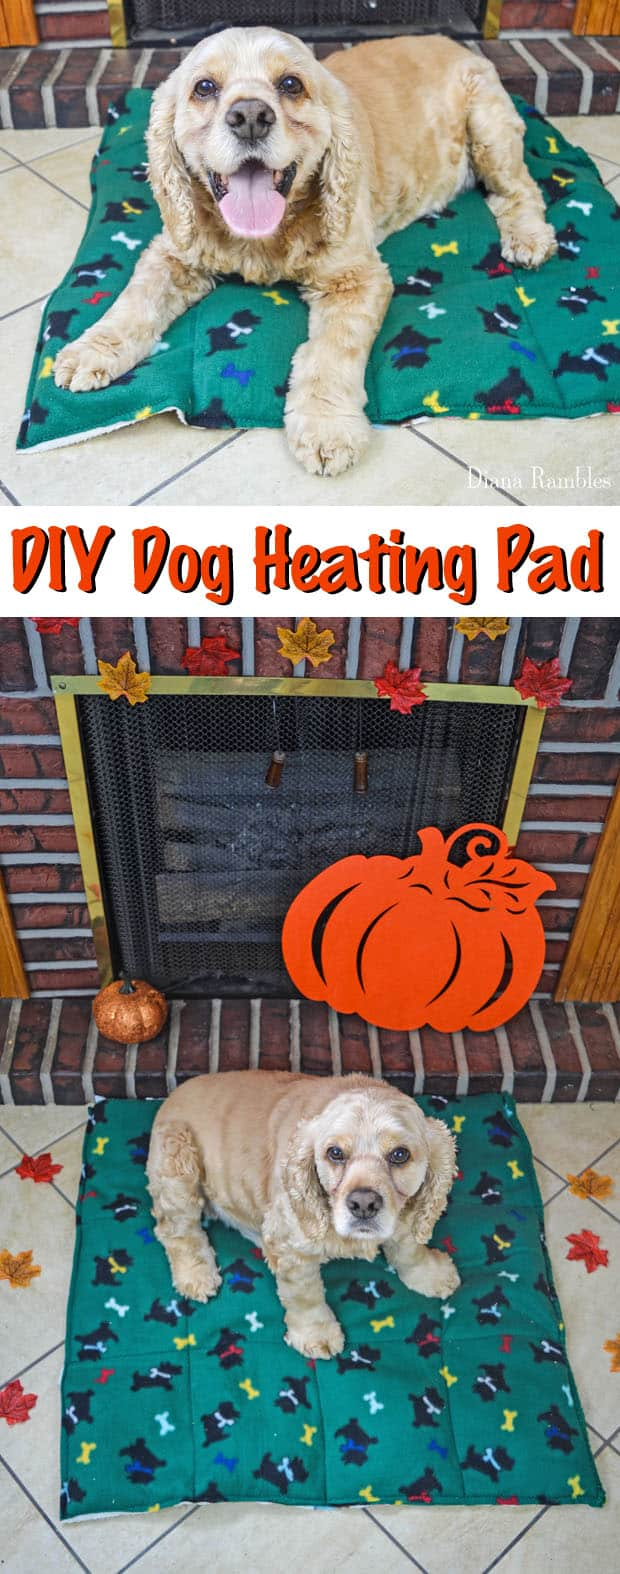 DIY Dog Heating Pad Tutorial - Make this Dog Heating Pad to keep your pooch warm during the cold of the winter. Your pet will love this heating bed.